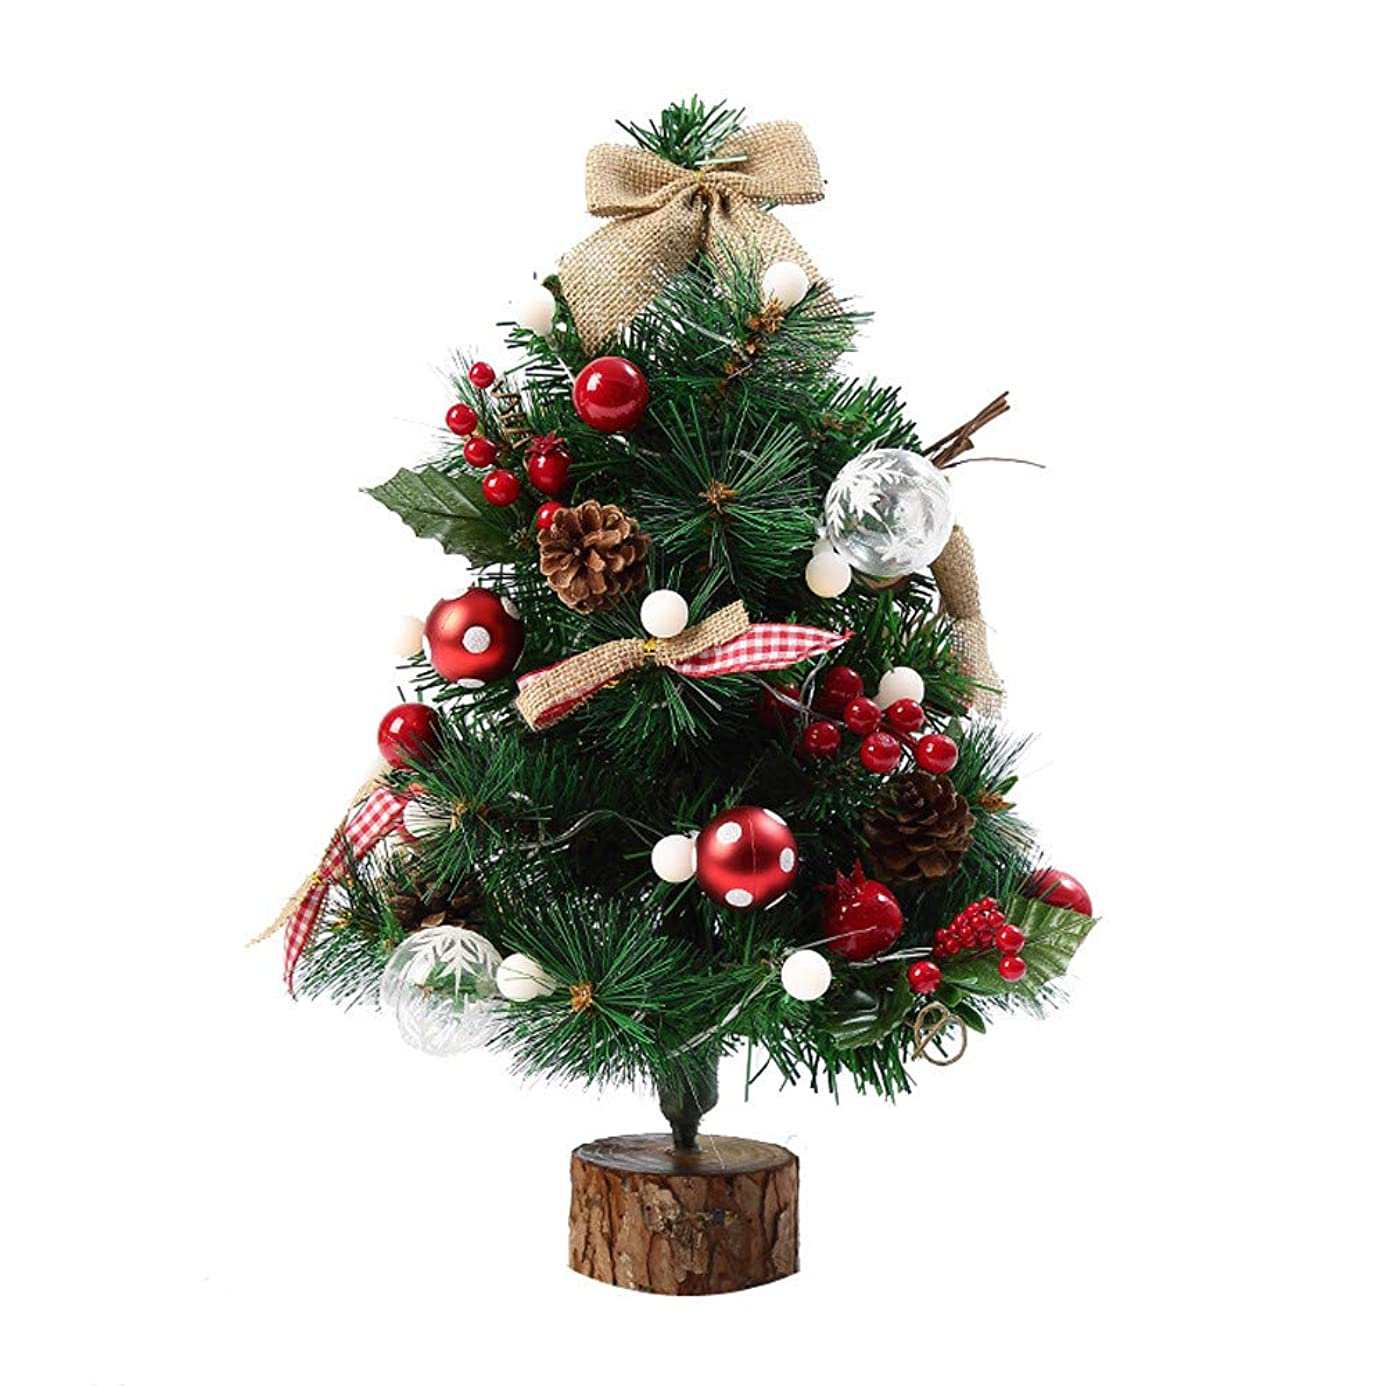 Iusun Christmas Tree LED Multicolor Lights Decoration Bedroom Indoor/Outdoor Bedroom Ornament Bonsai for Home Office Supplies Gift- Shipping From USA (Multicolor)